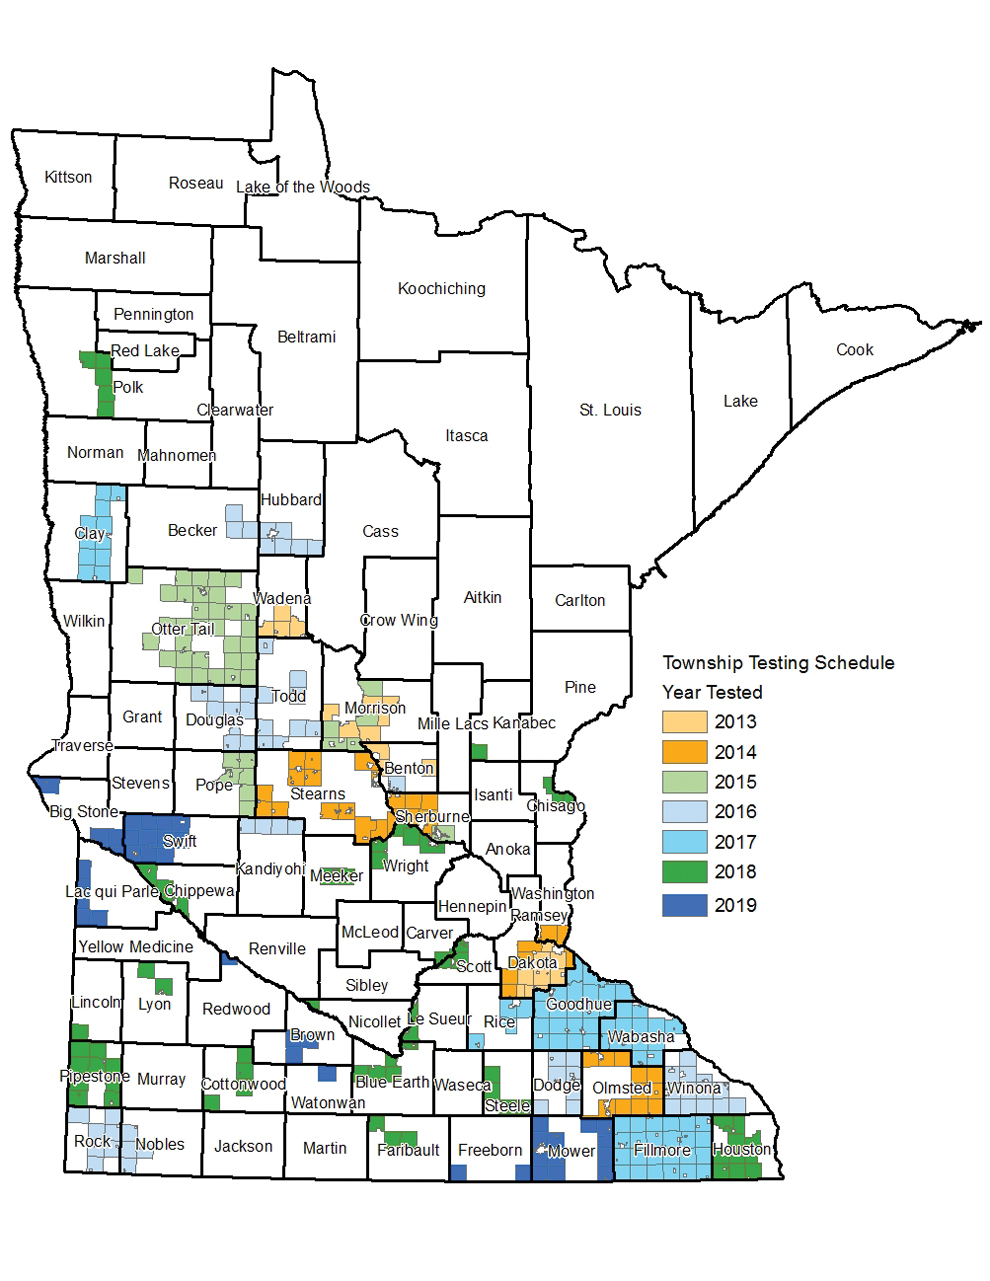 Report says 150,000 Minnesotans drinking water above legal nitrate limit | News, Sports, Jobs - NUjournal